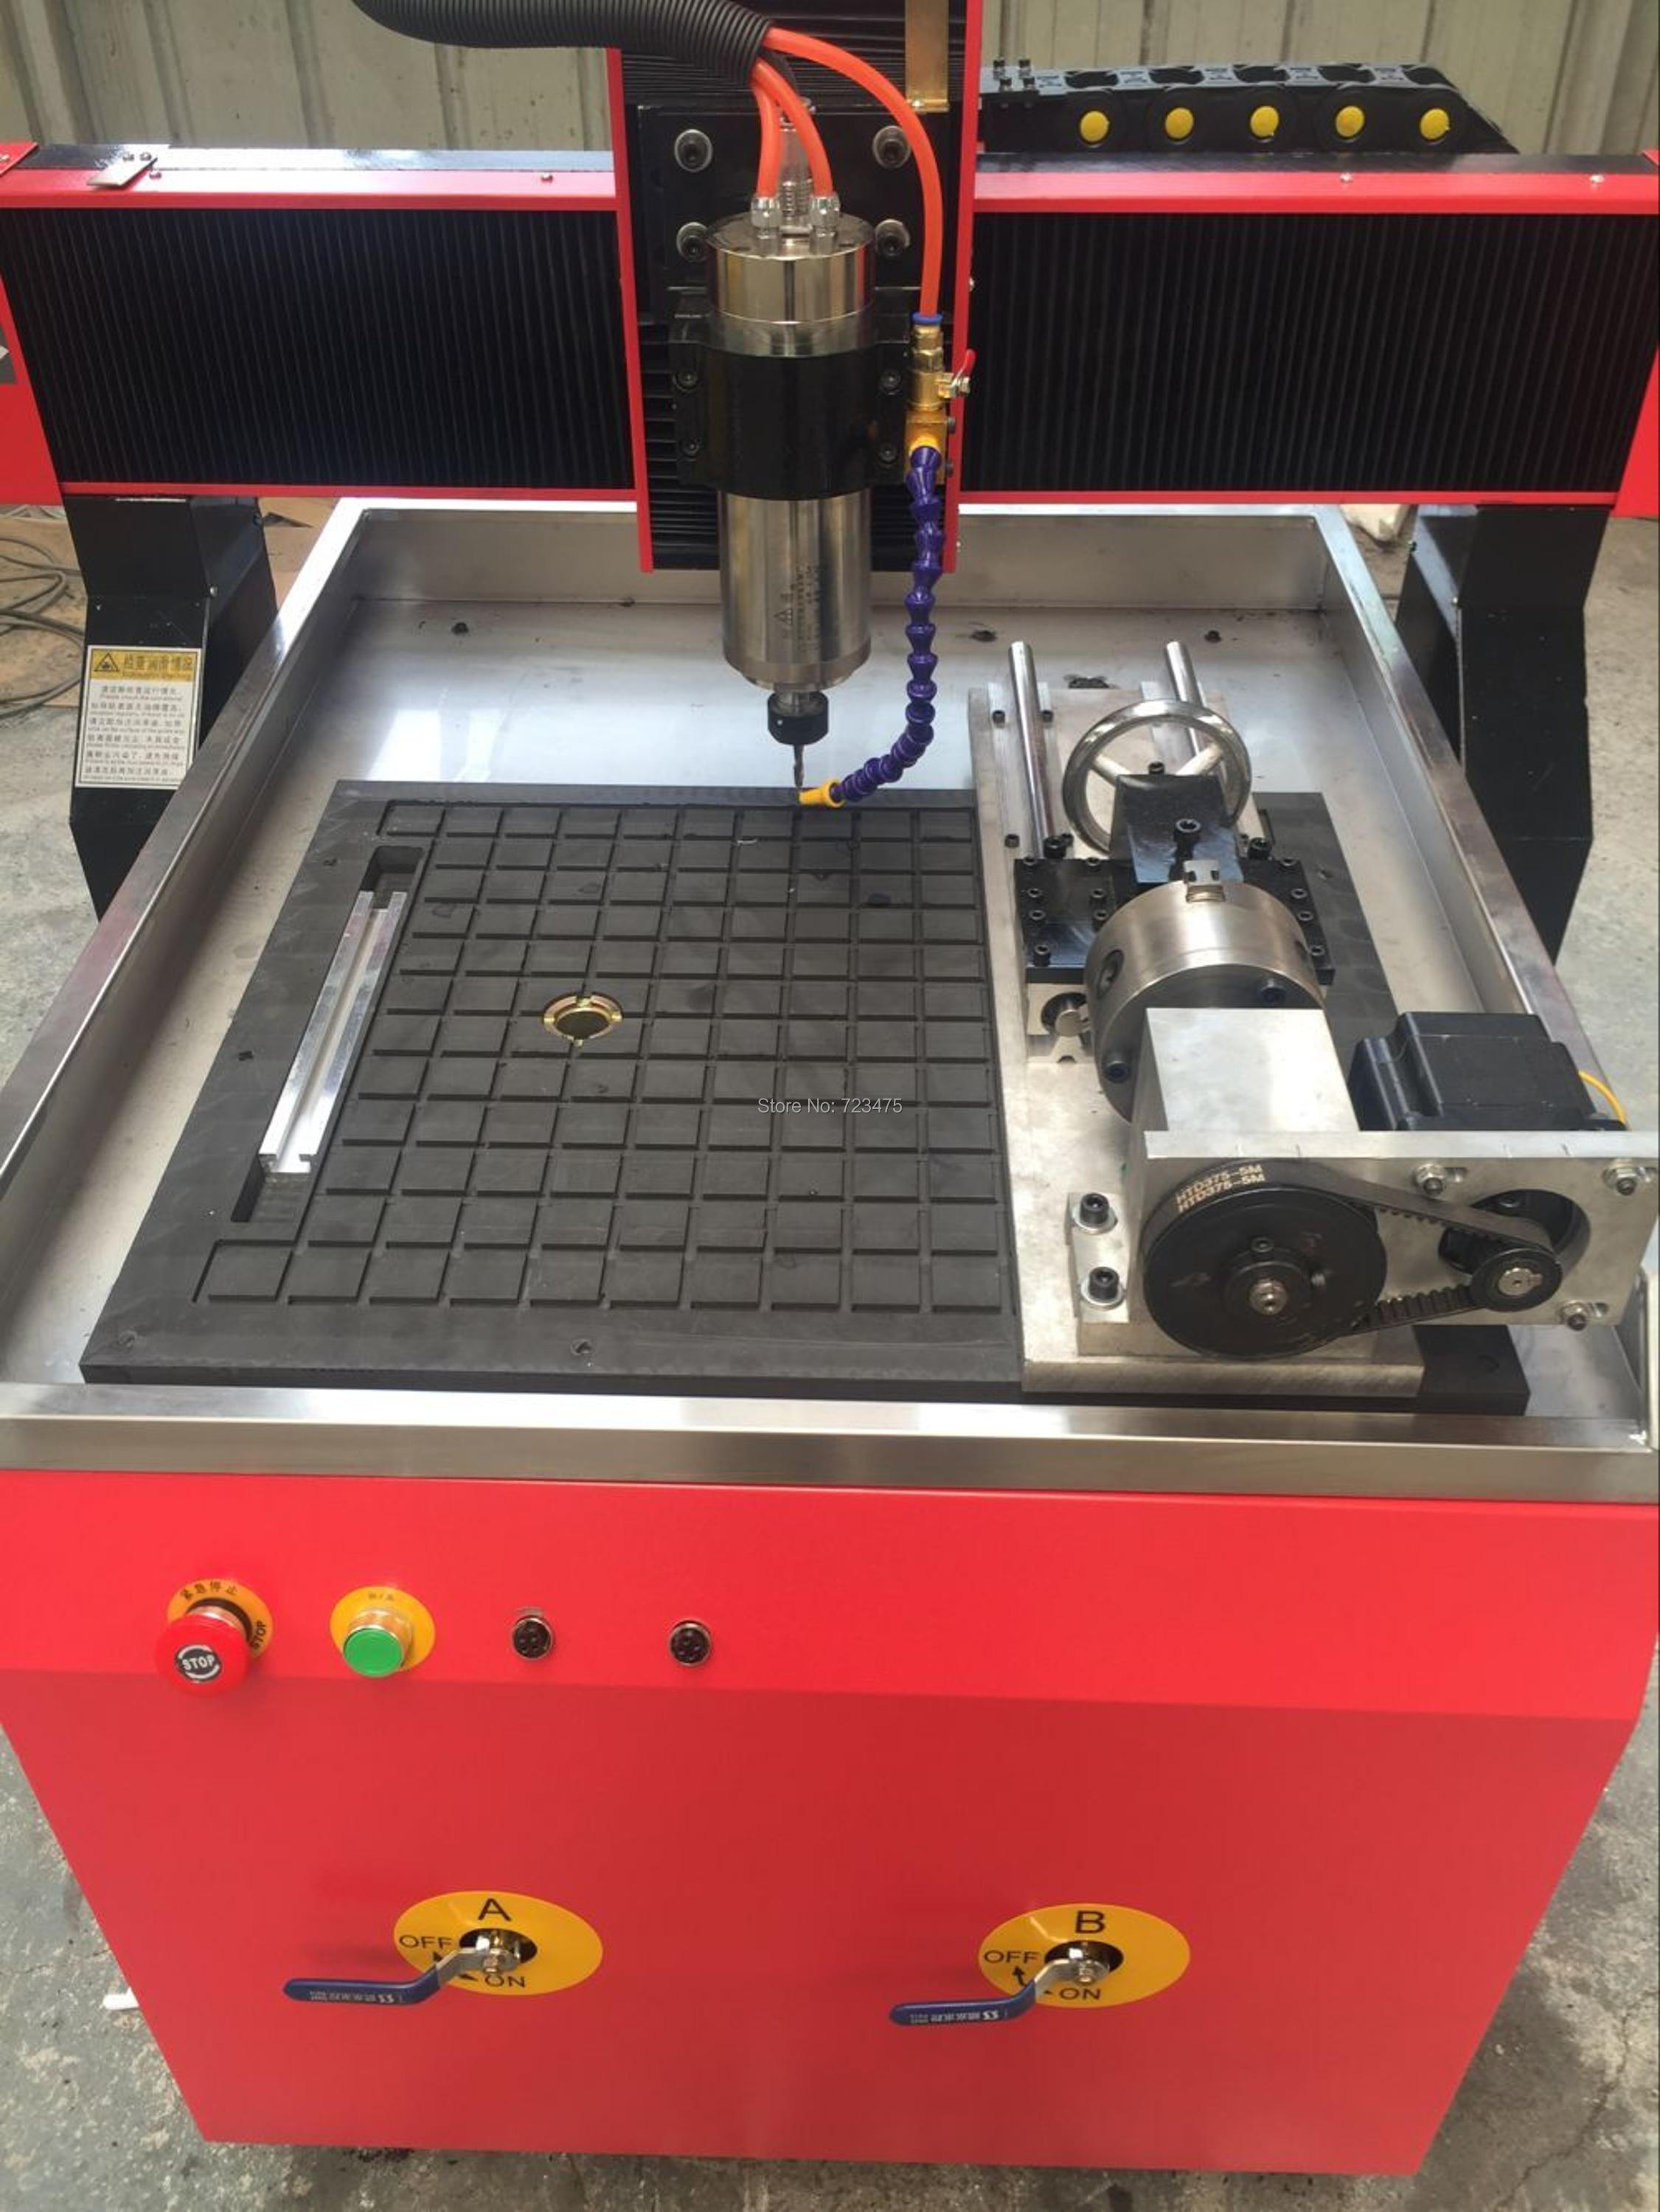 CNC 6090 1.5KW/2.2KW/3.0KW water cooling spindle small metal cnc router 6090 панель декоративная awenta pet100 д вентилятора kw сатин